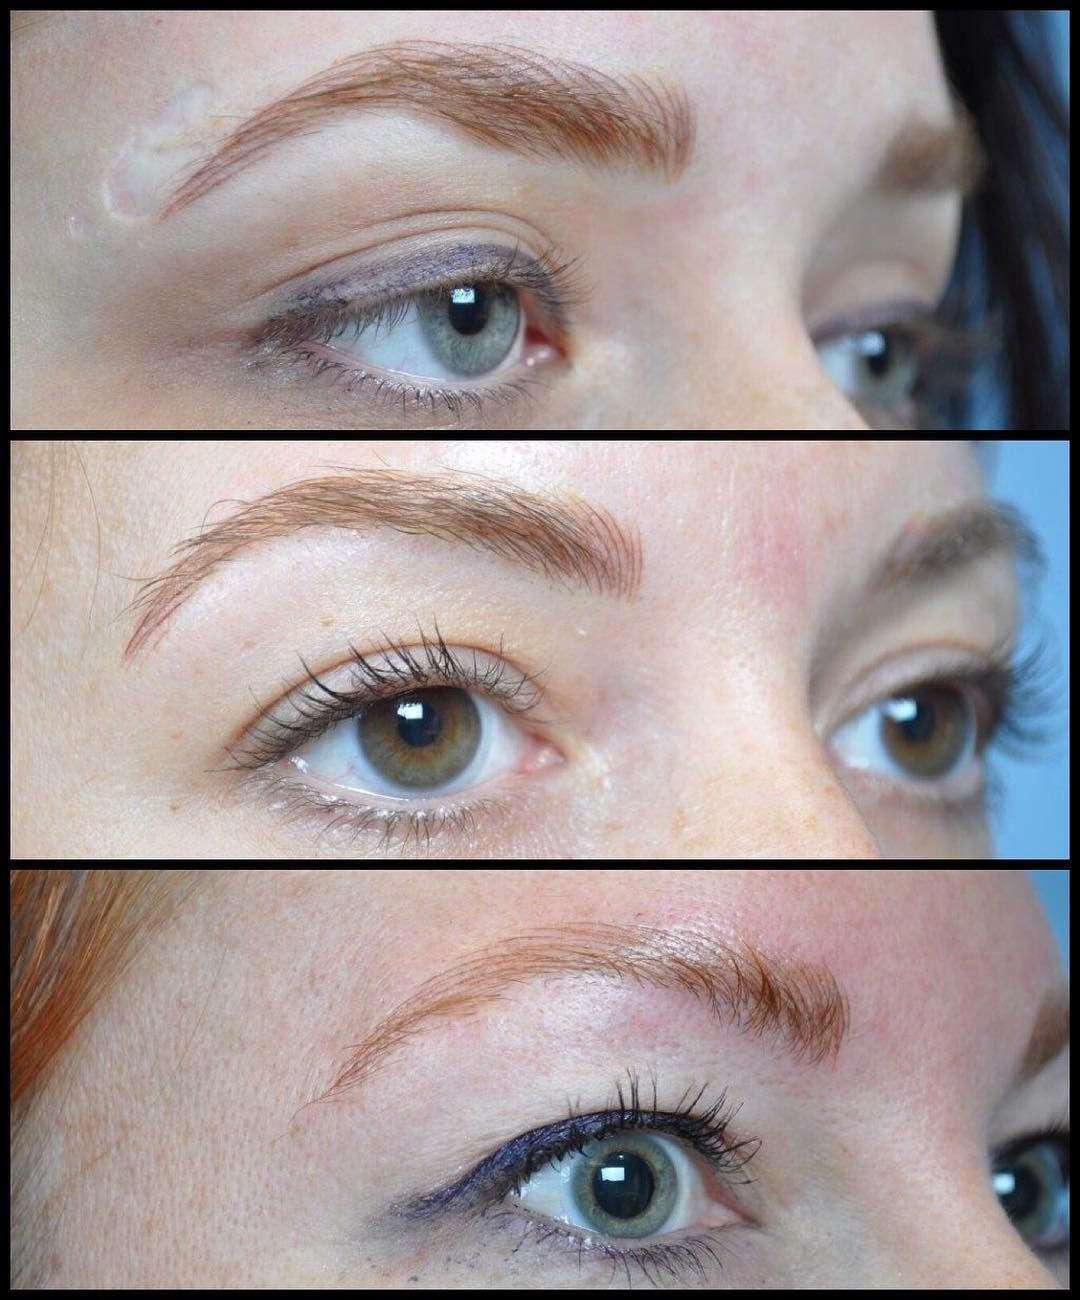 Hairy tattoo of eyebrows. Care after tattoo after skin